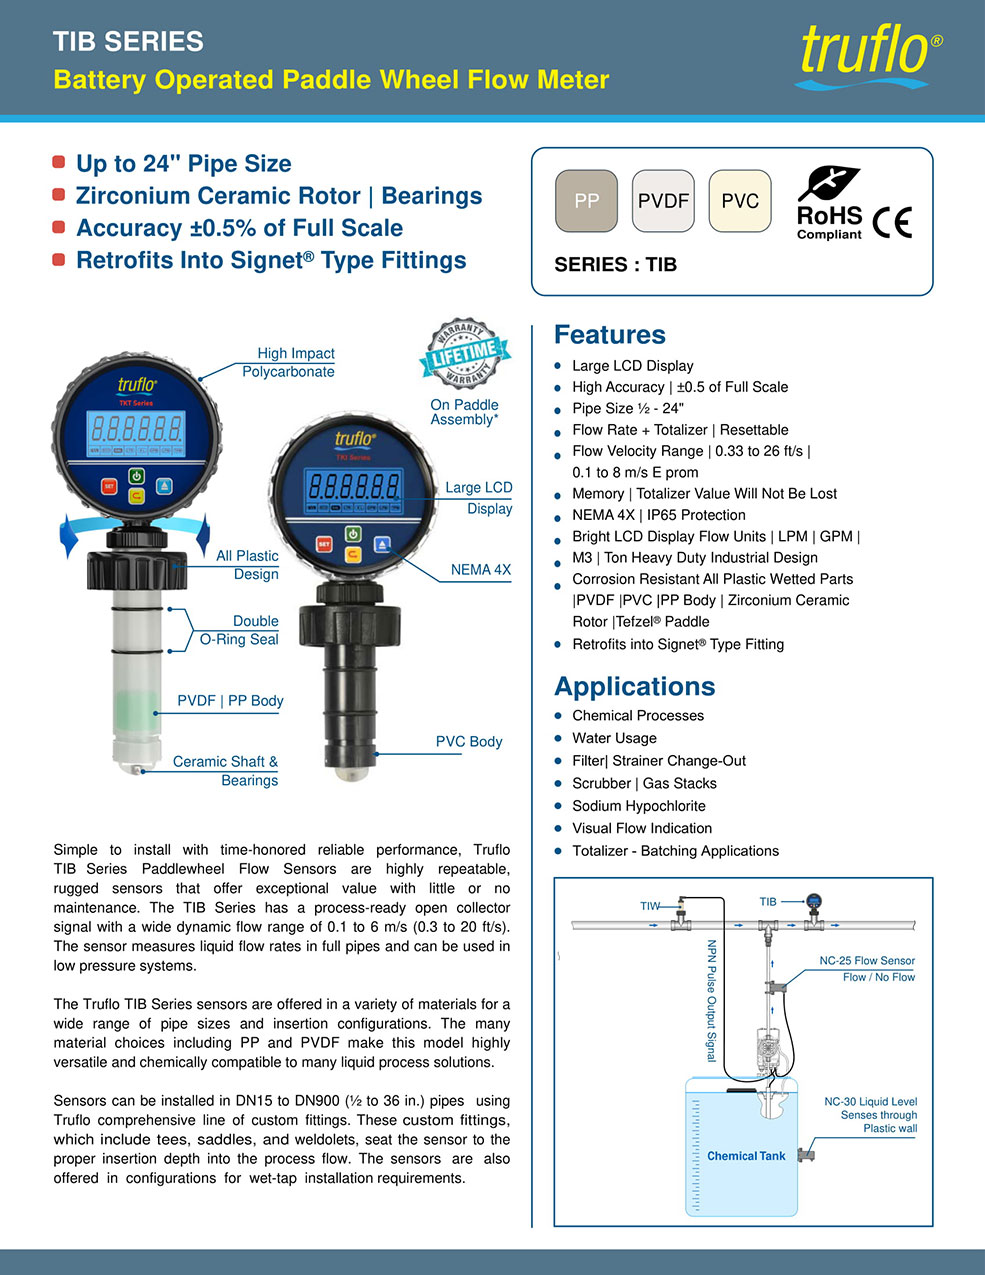 TIB Insertion Paddle Wheel Flow Meter - Battery Operated